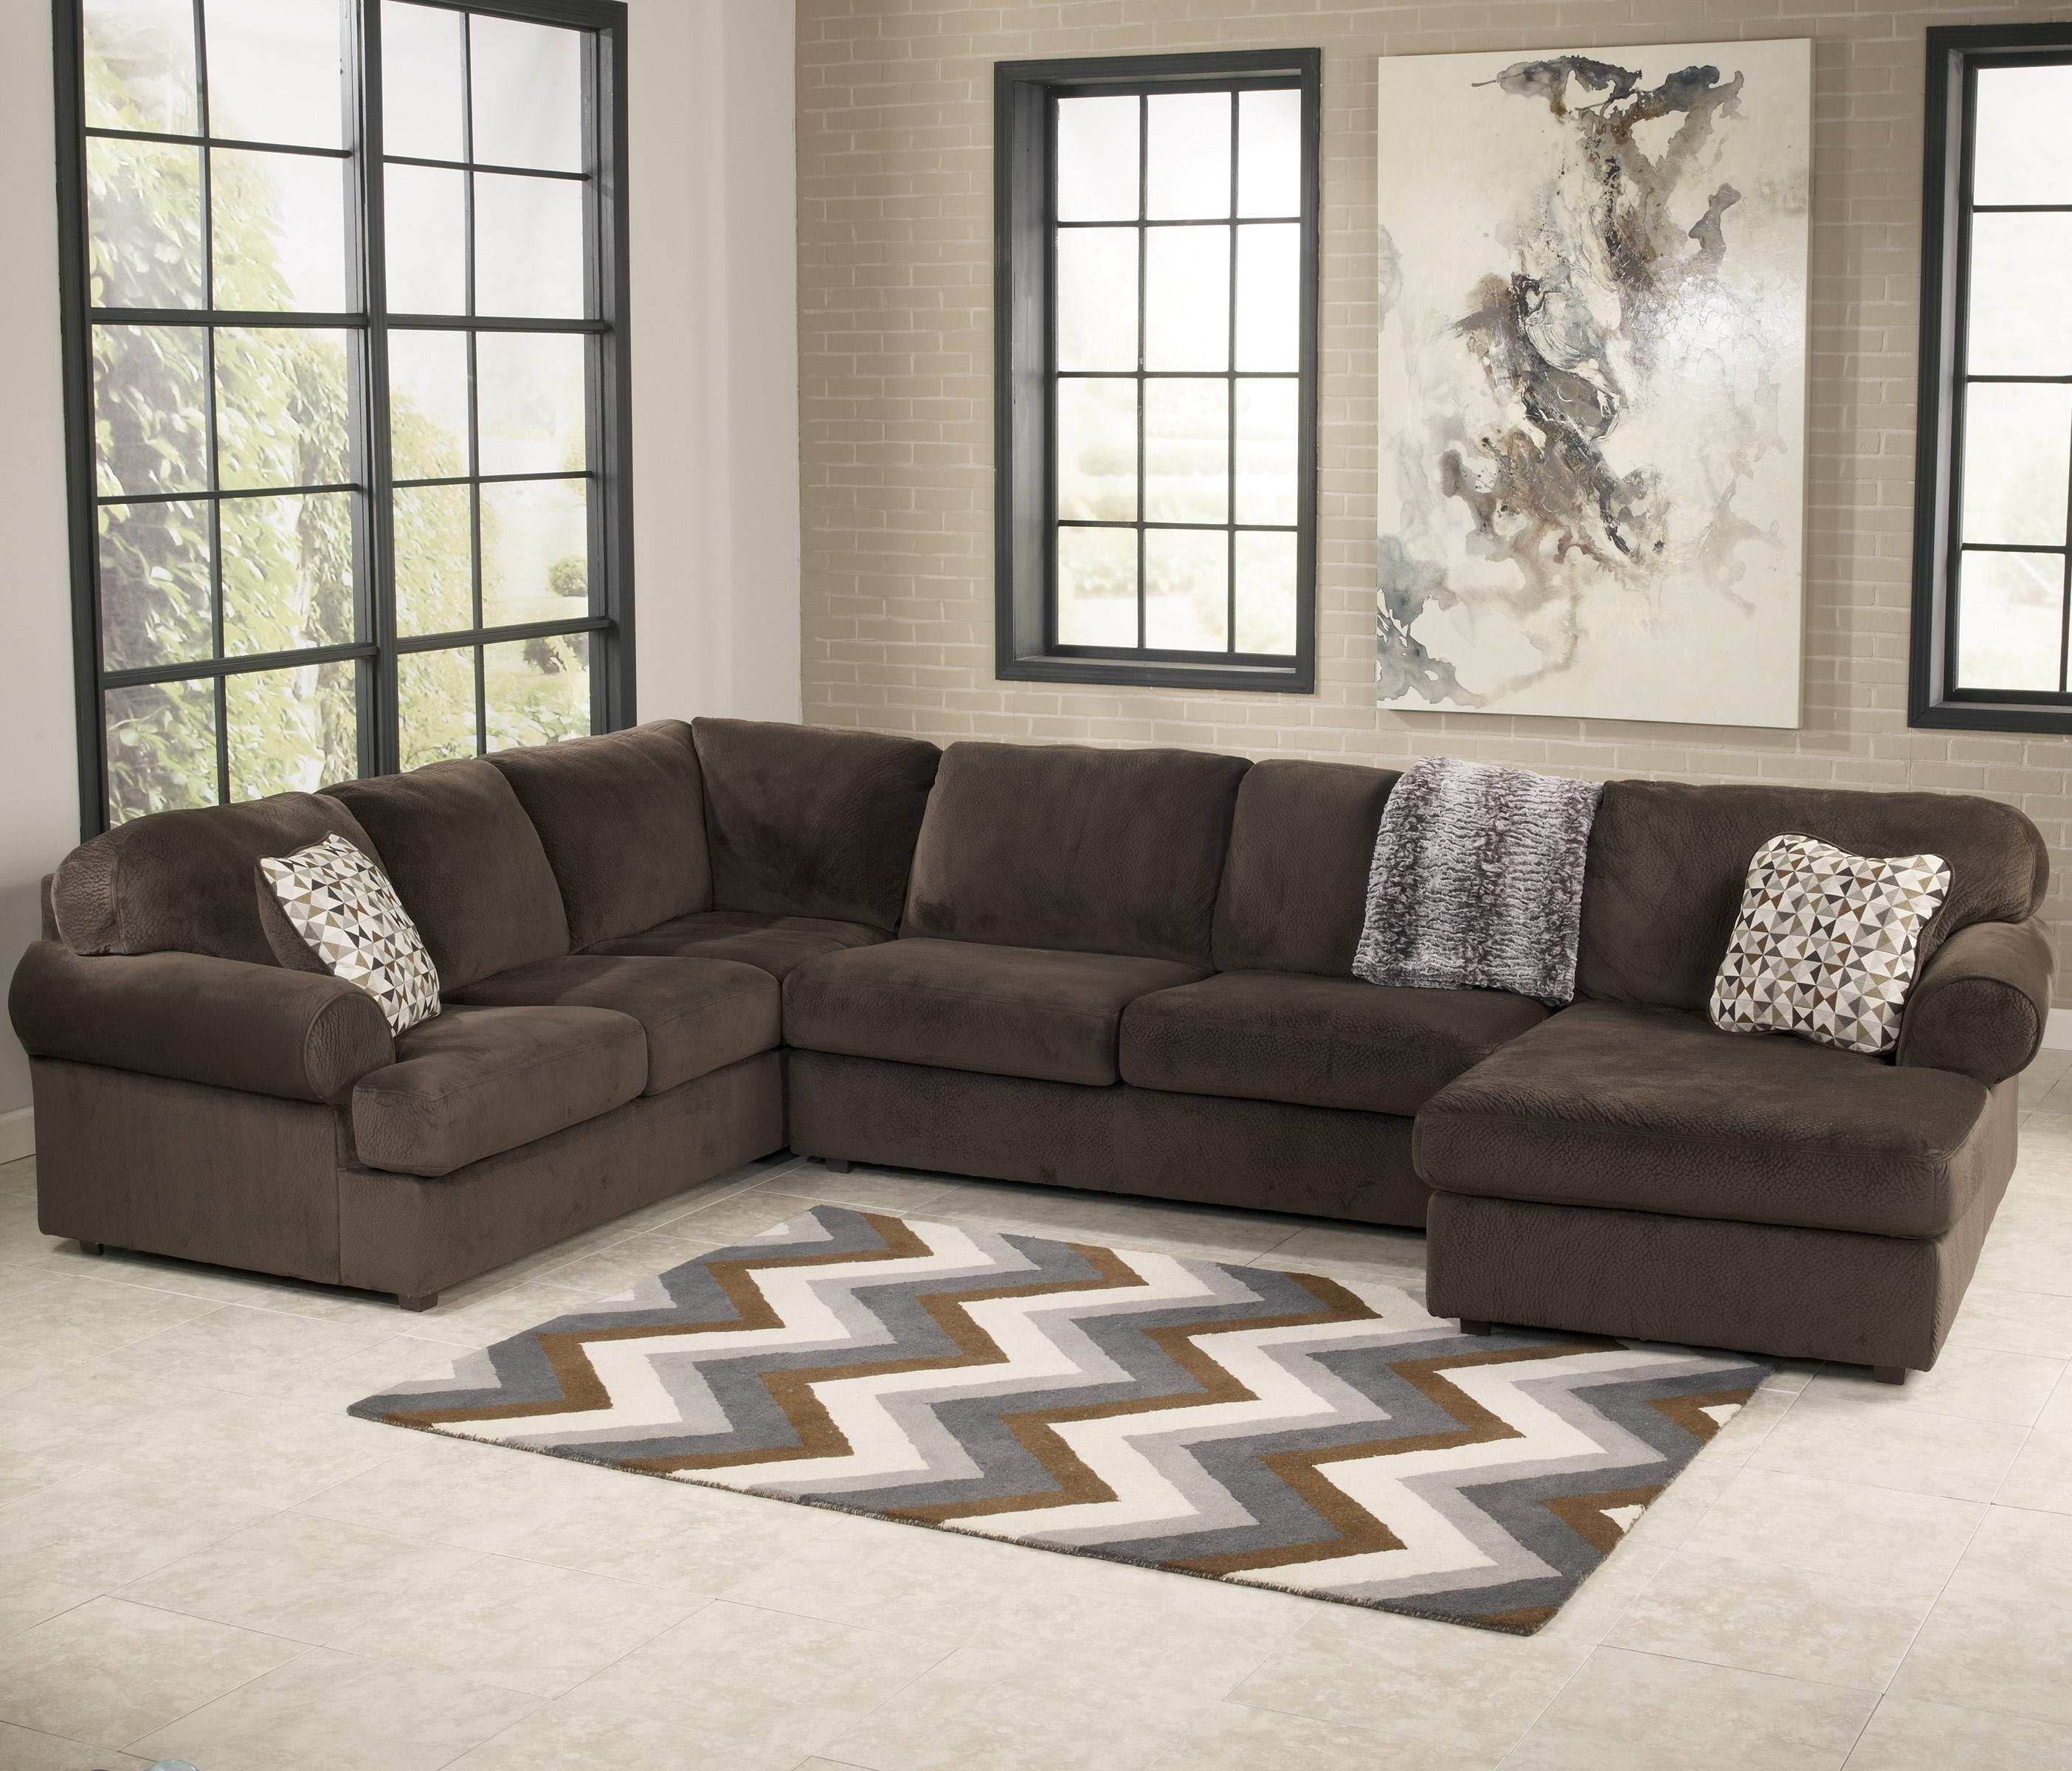 Most Popular Signature Designashley Jessa Place – Chocolate Casual With Regard To East Bay Sectional Sofas (View 7 of 20)